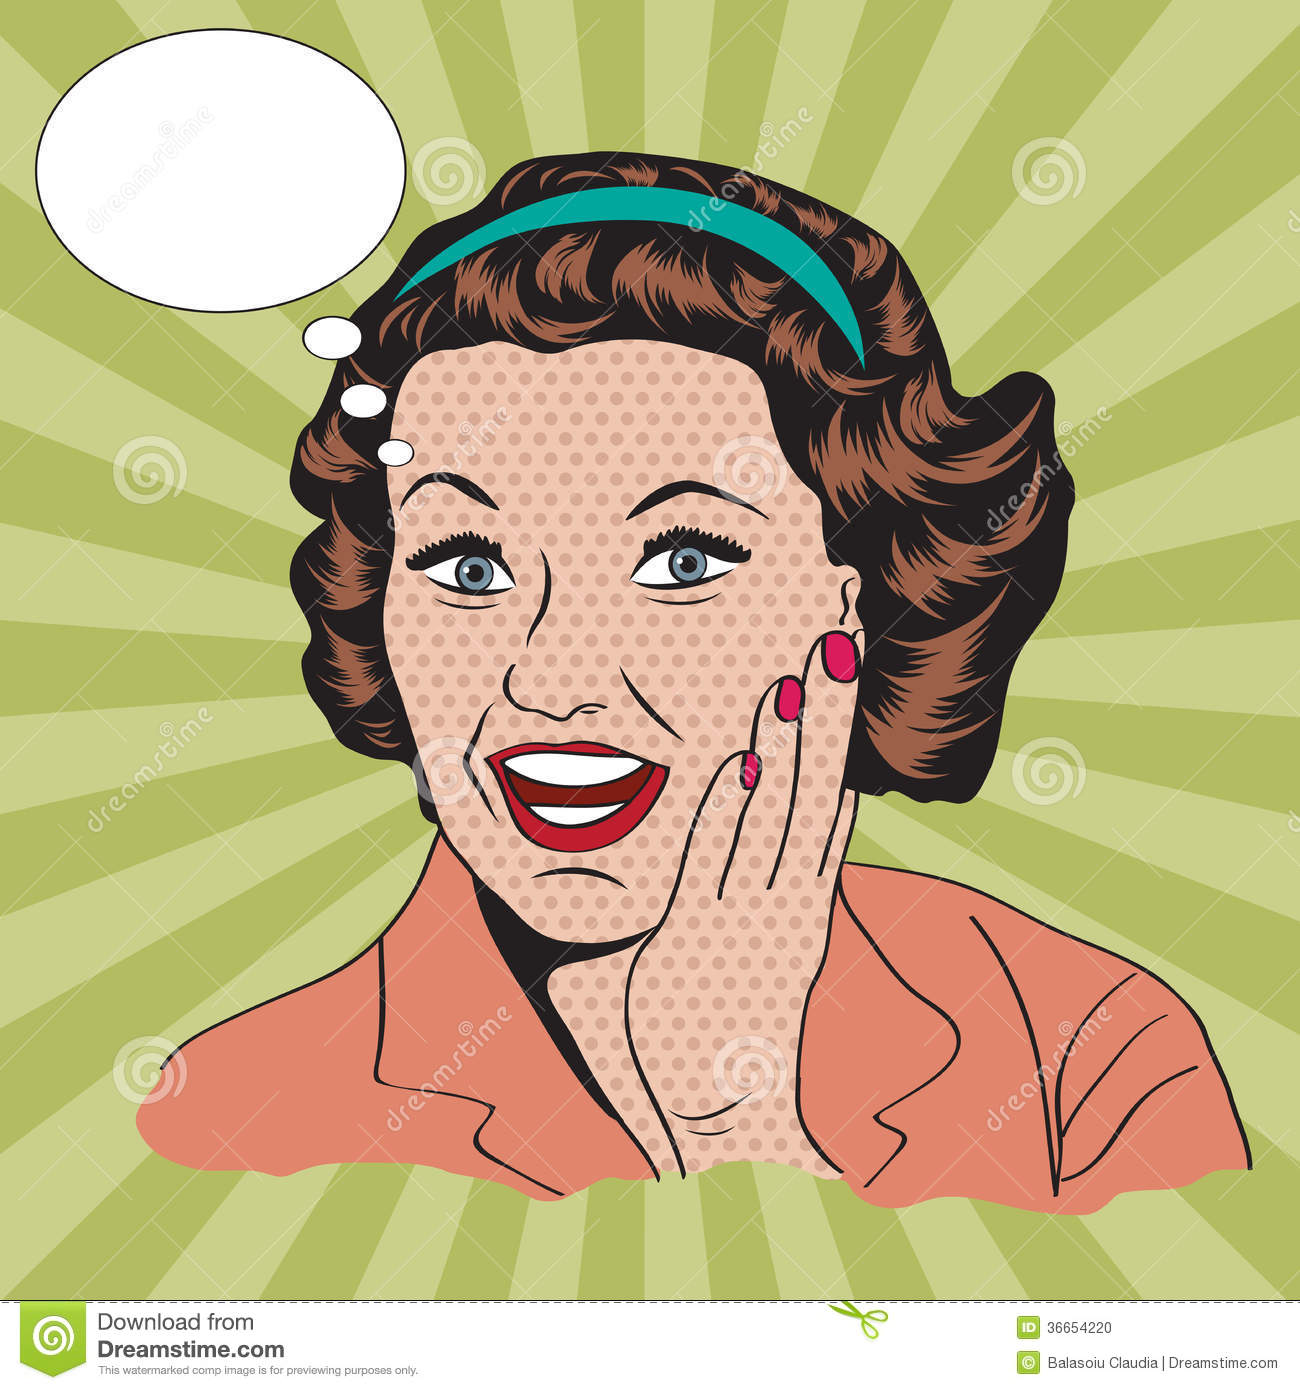 happy-woman-commercial-retro-clipart-illustration-message-36654220.jpg